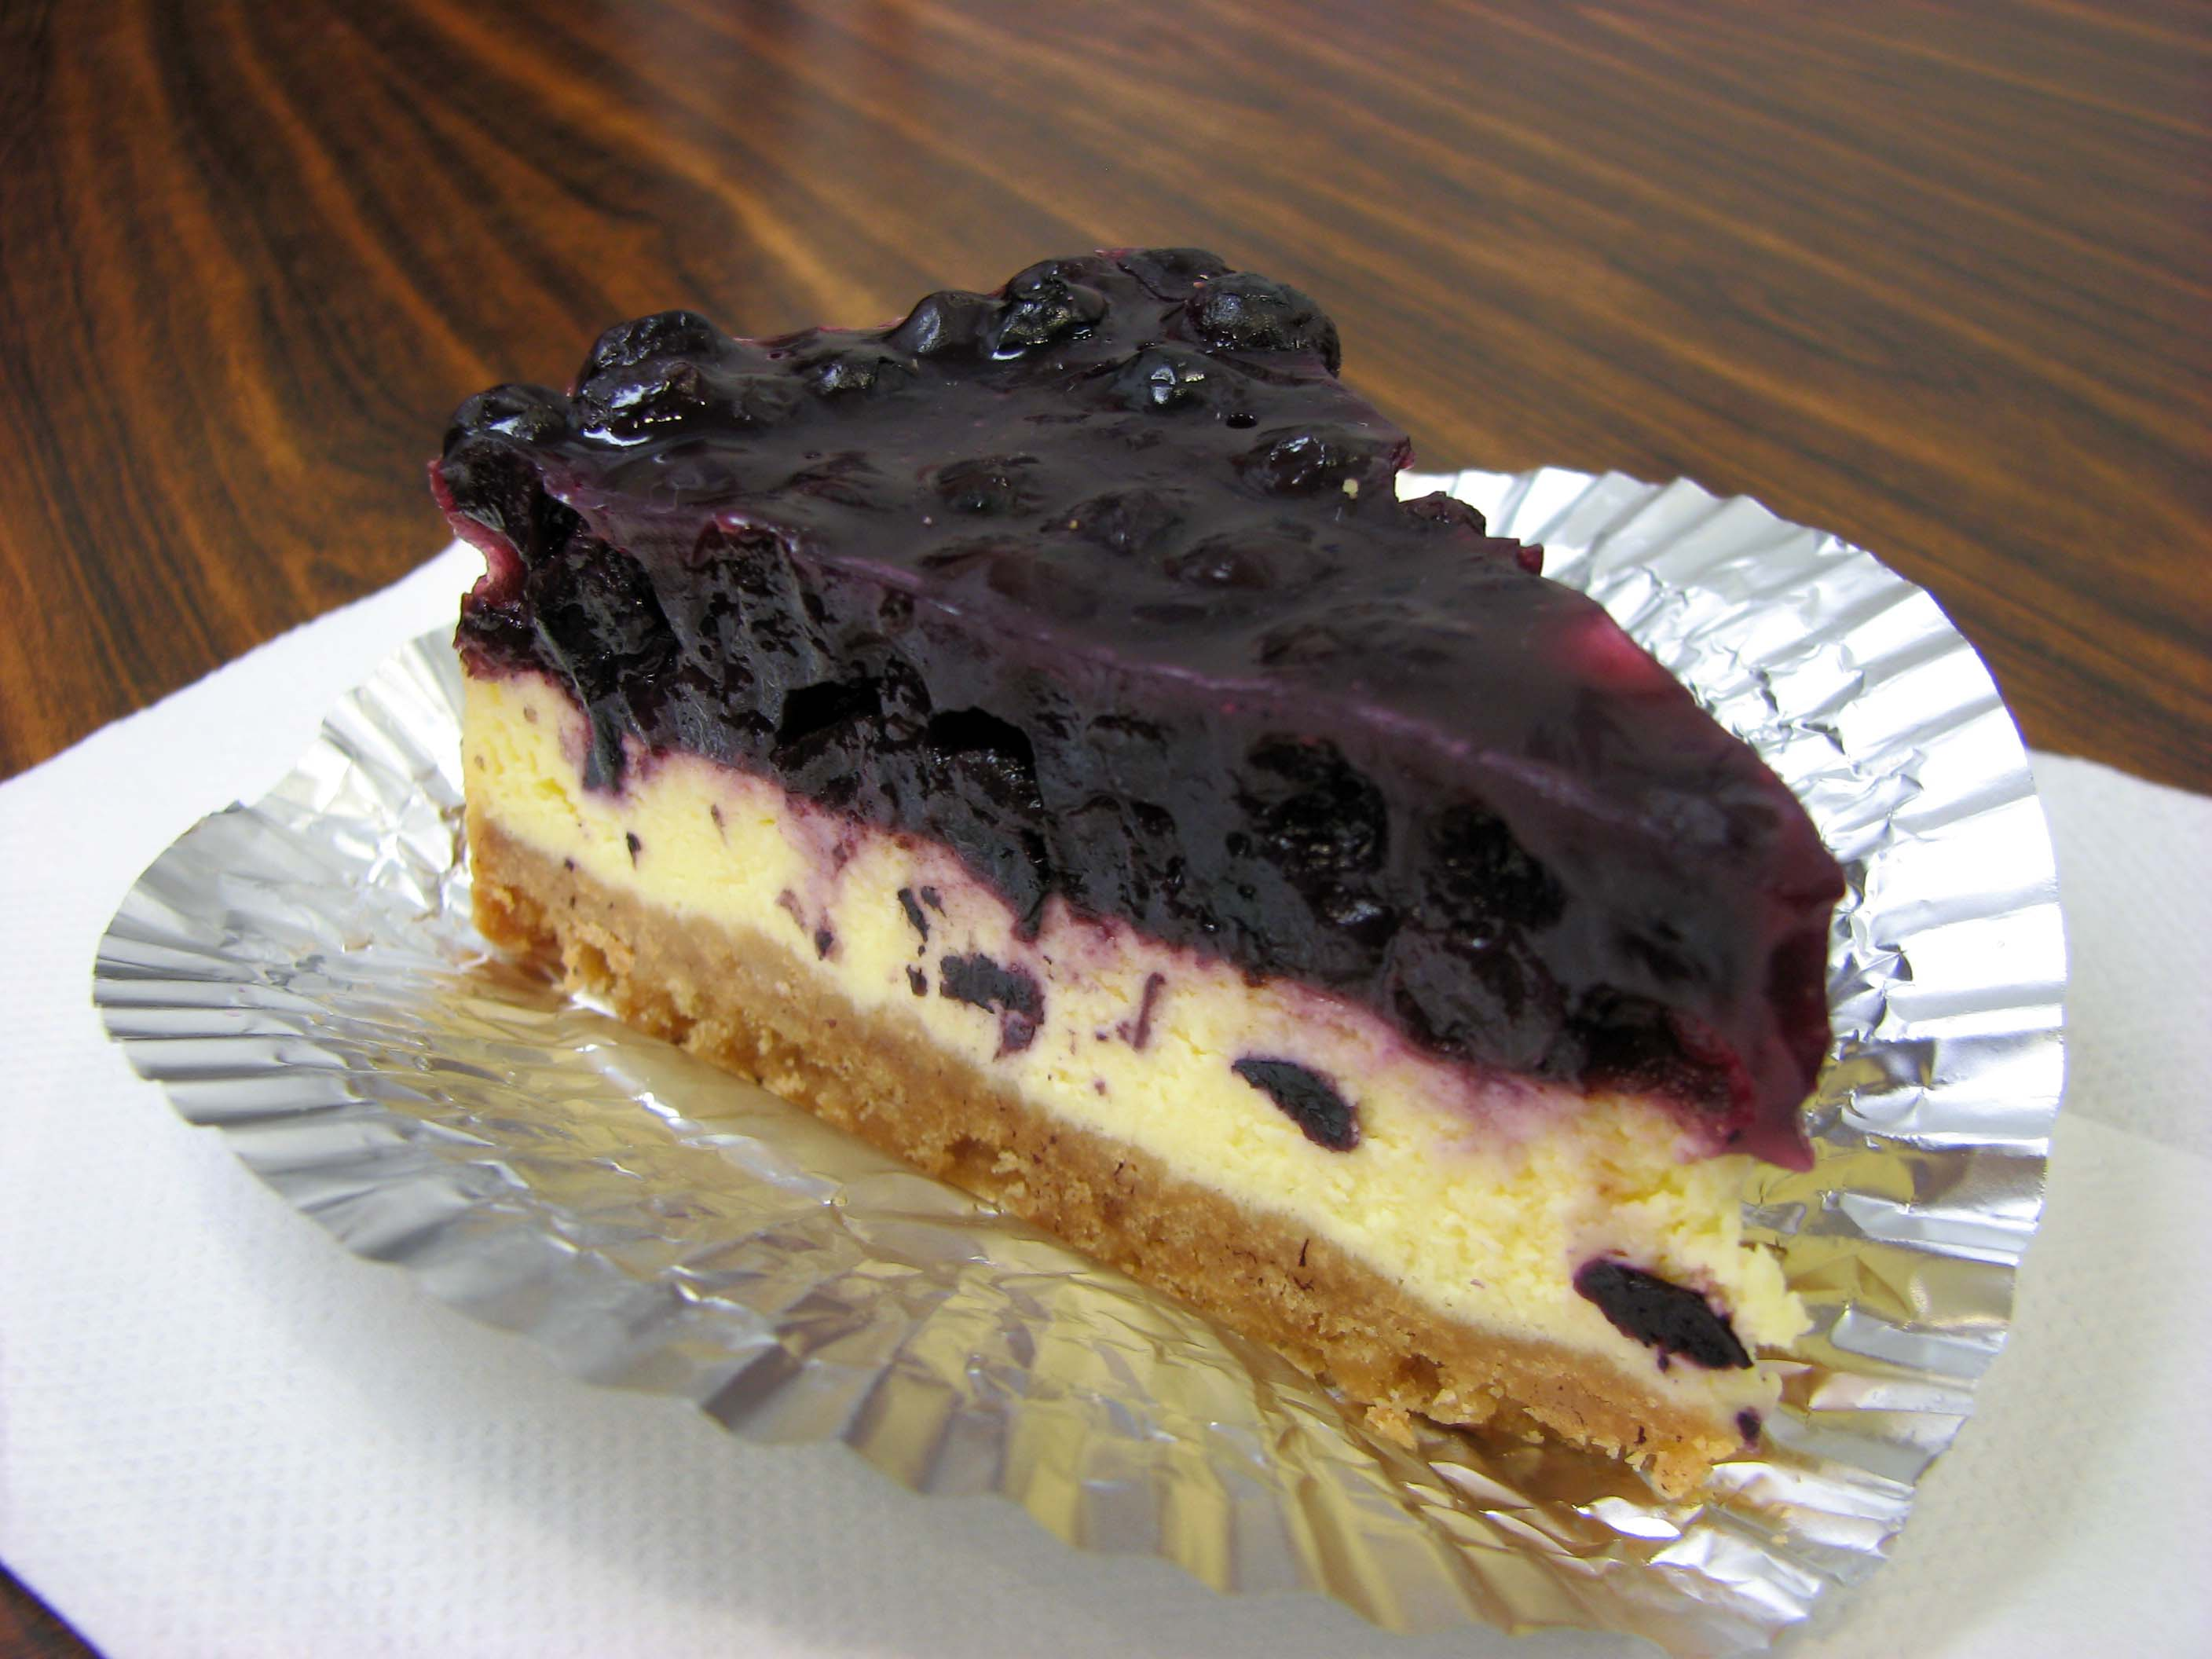 Файл:Cheesecake with blueberry topping.jpg — Уикипедия